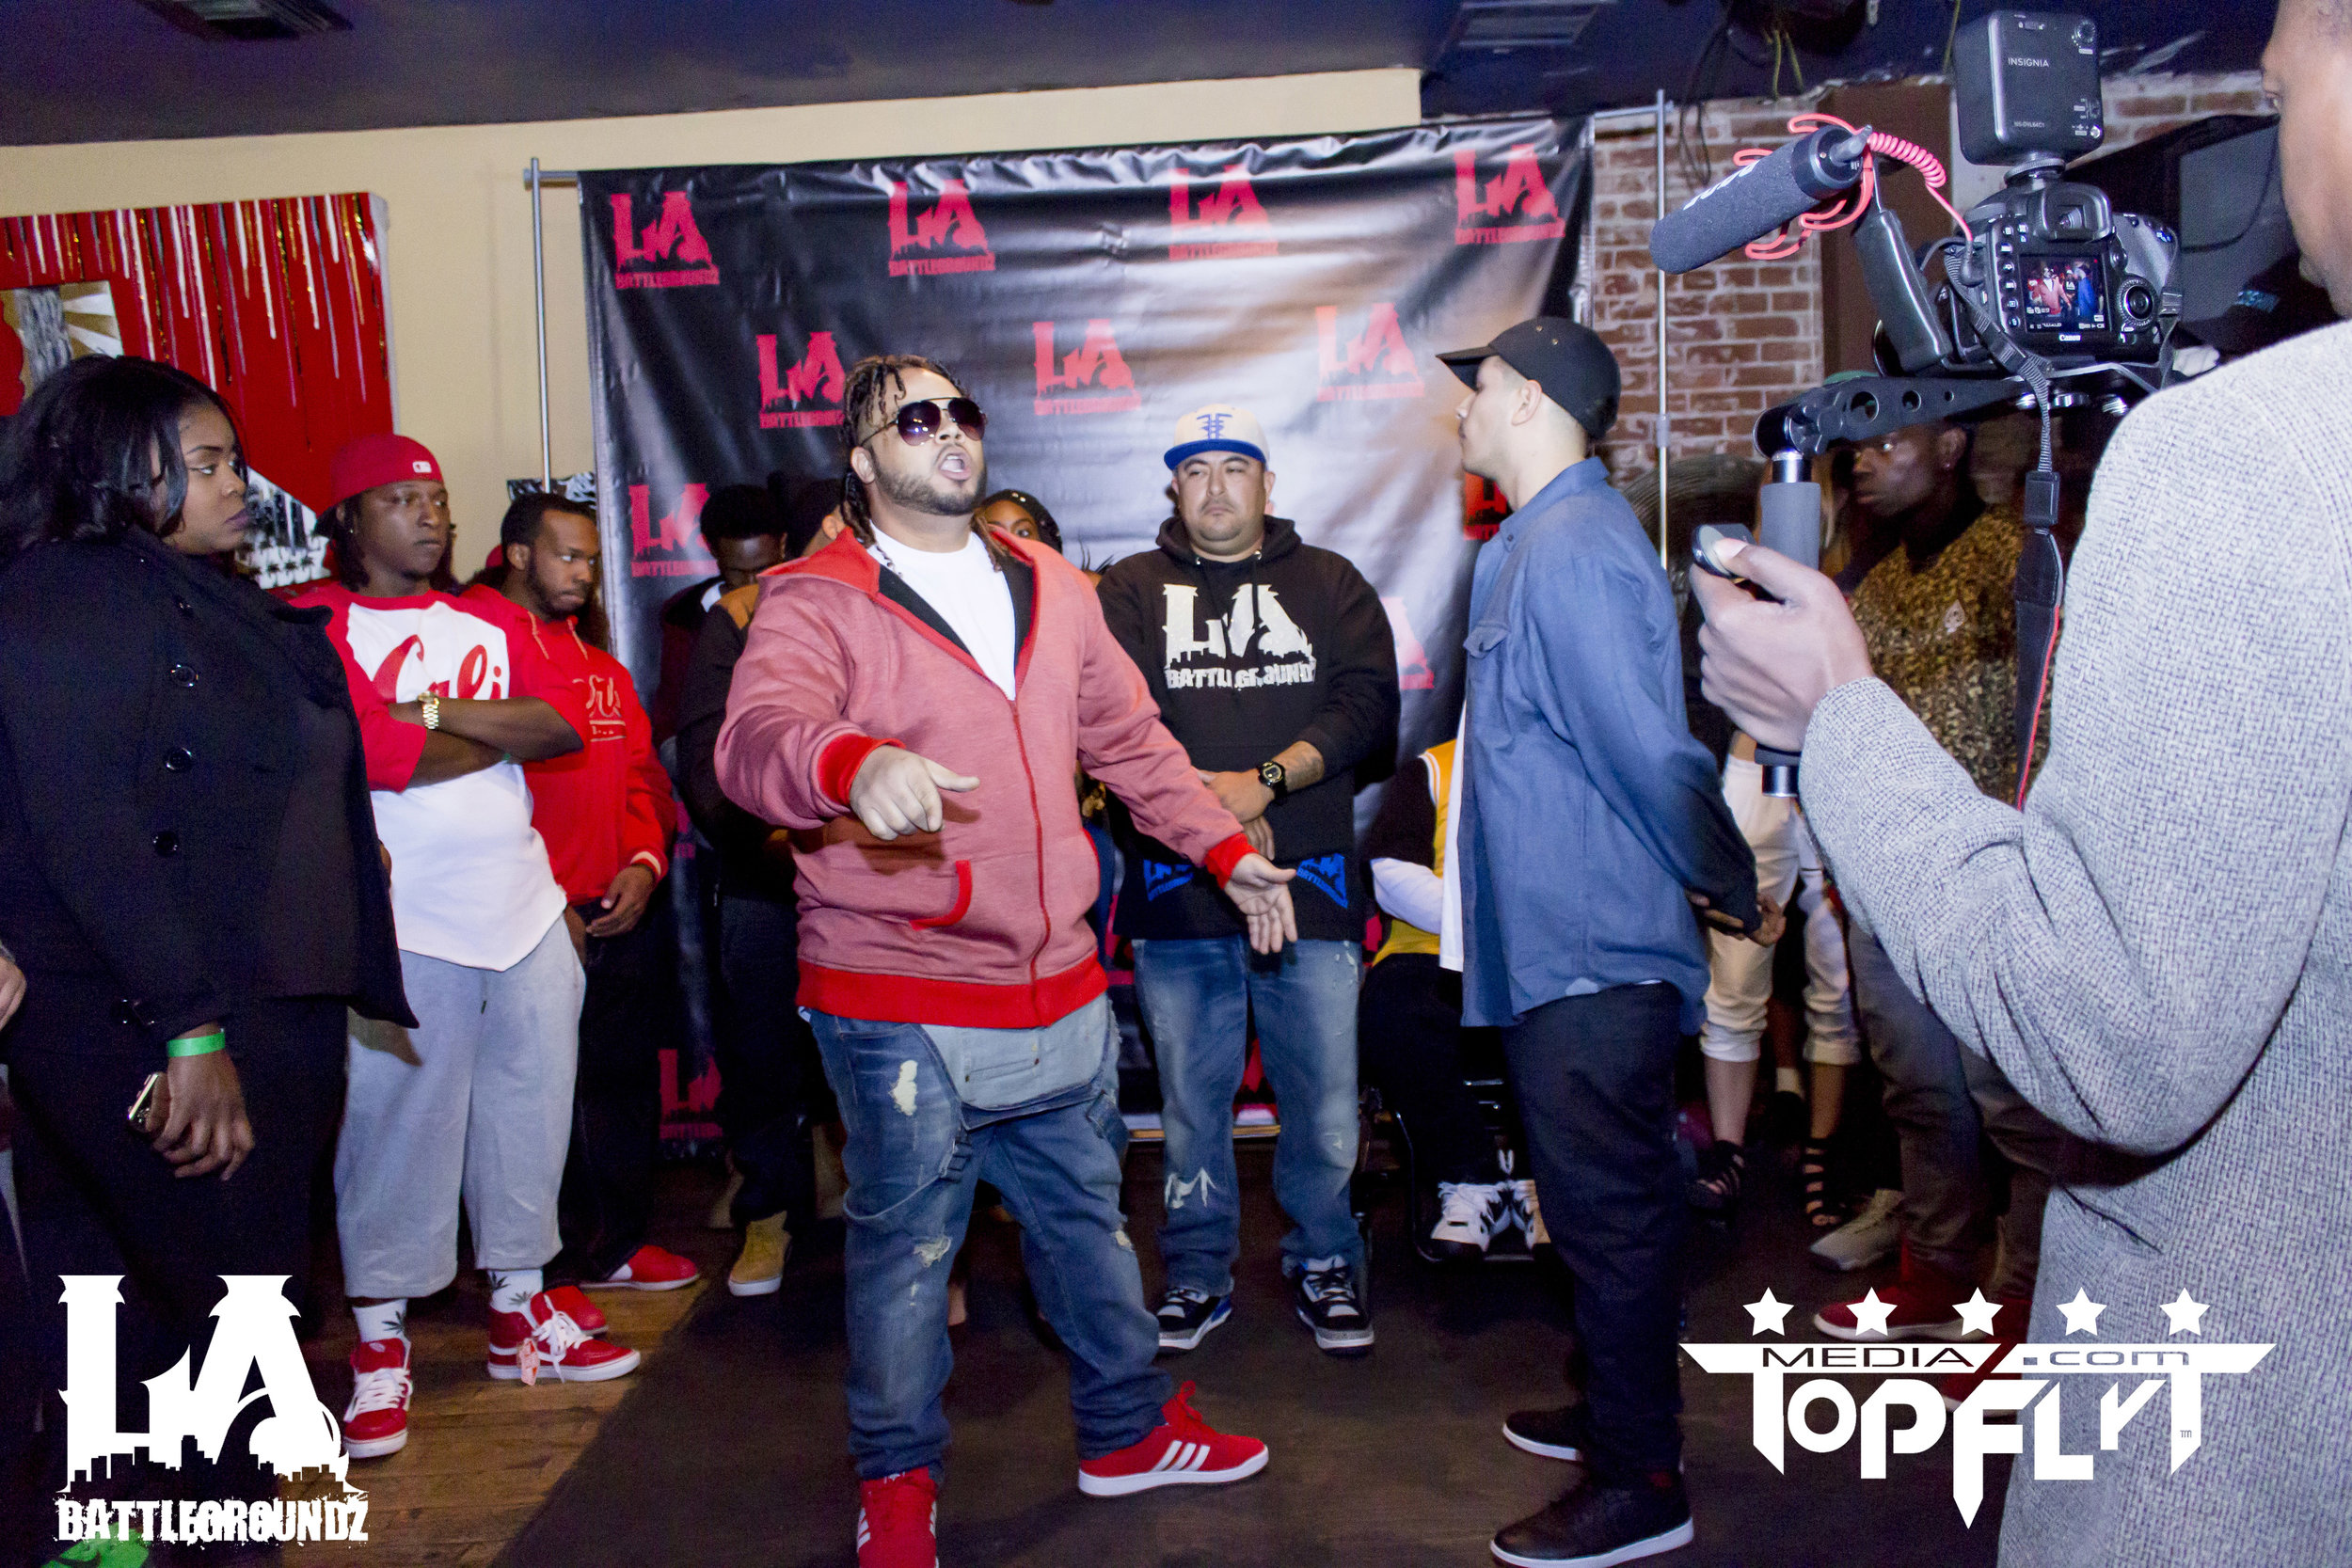 LA Battlegroundz - Decembarfest - The Christening_25.jpg